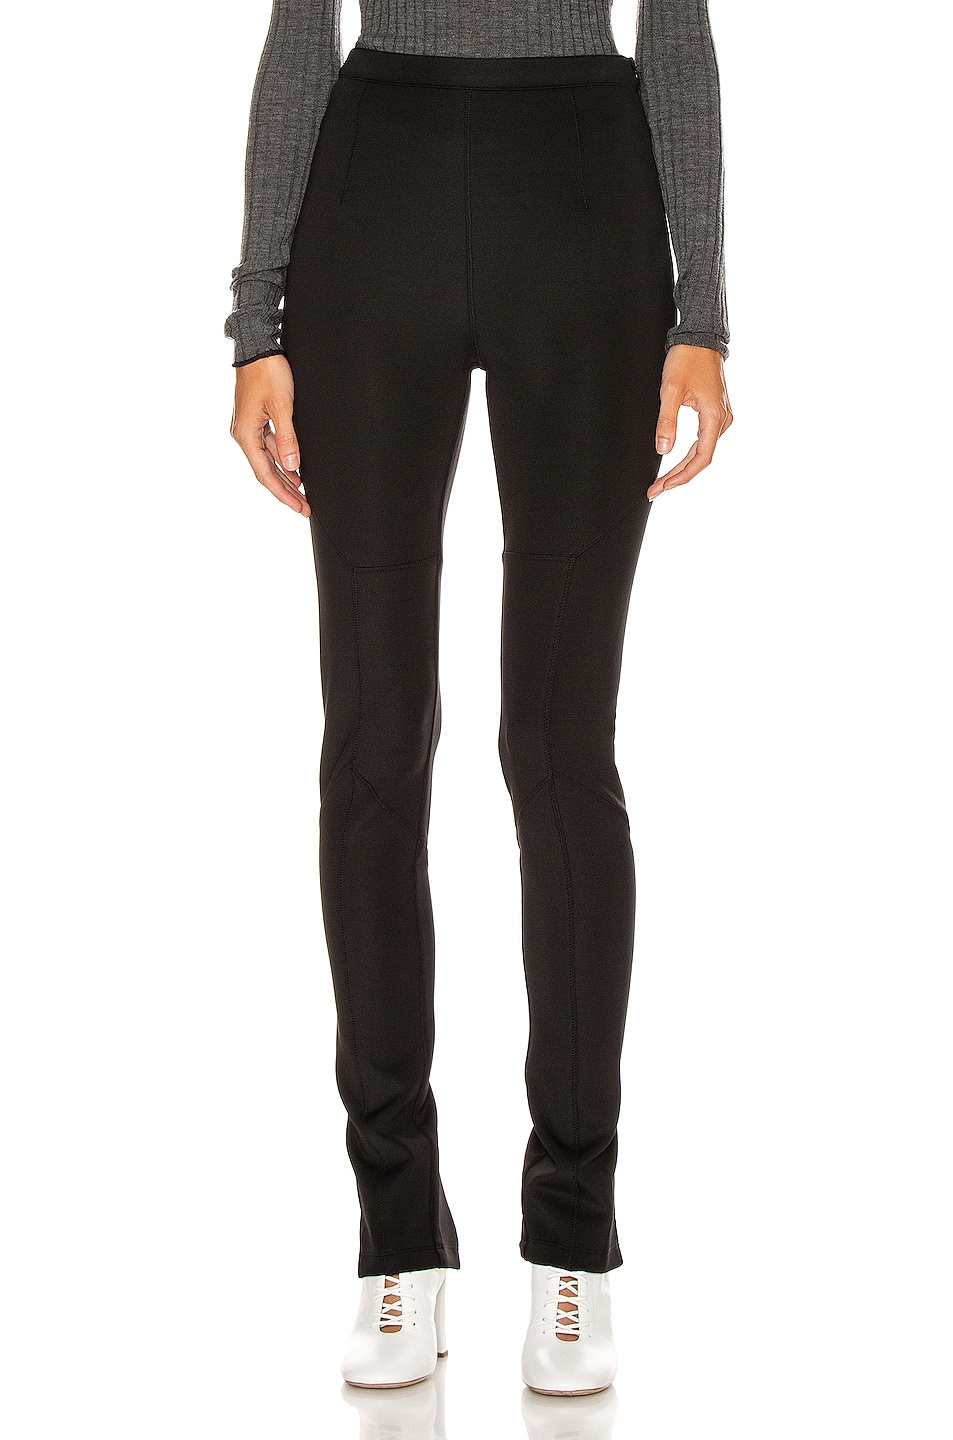 Image 1 of Proenza Schouler White Label Straight Leg Pant in Black